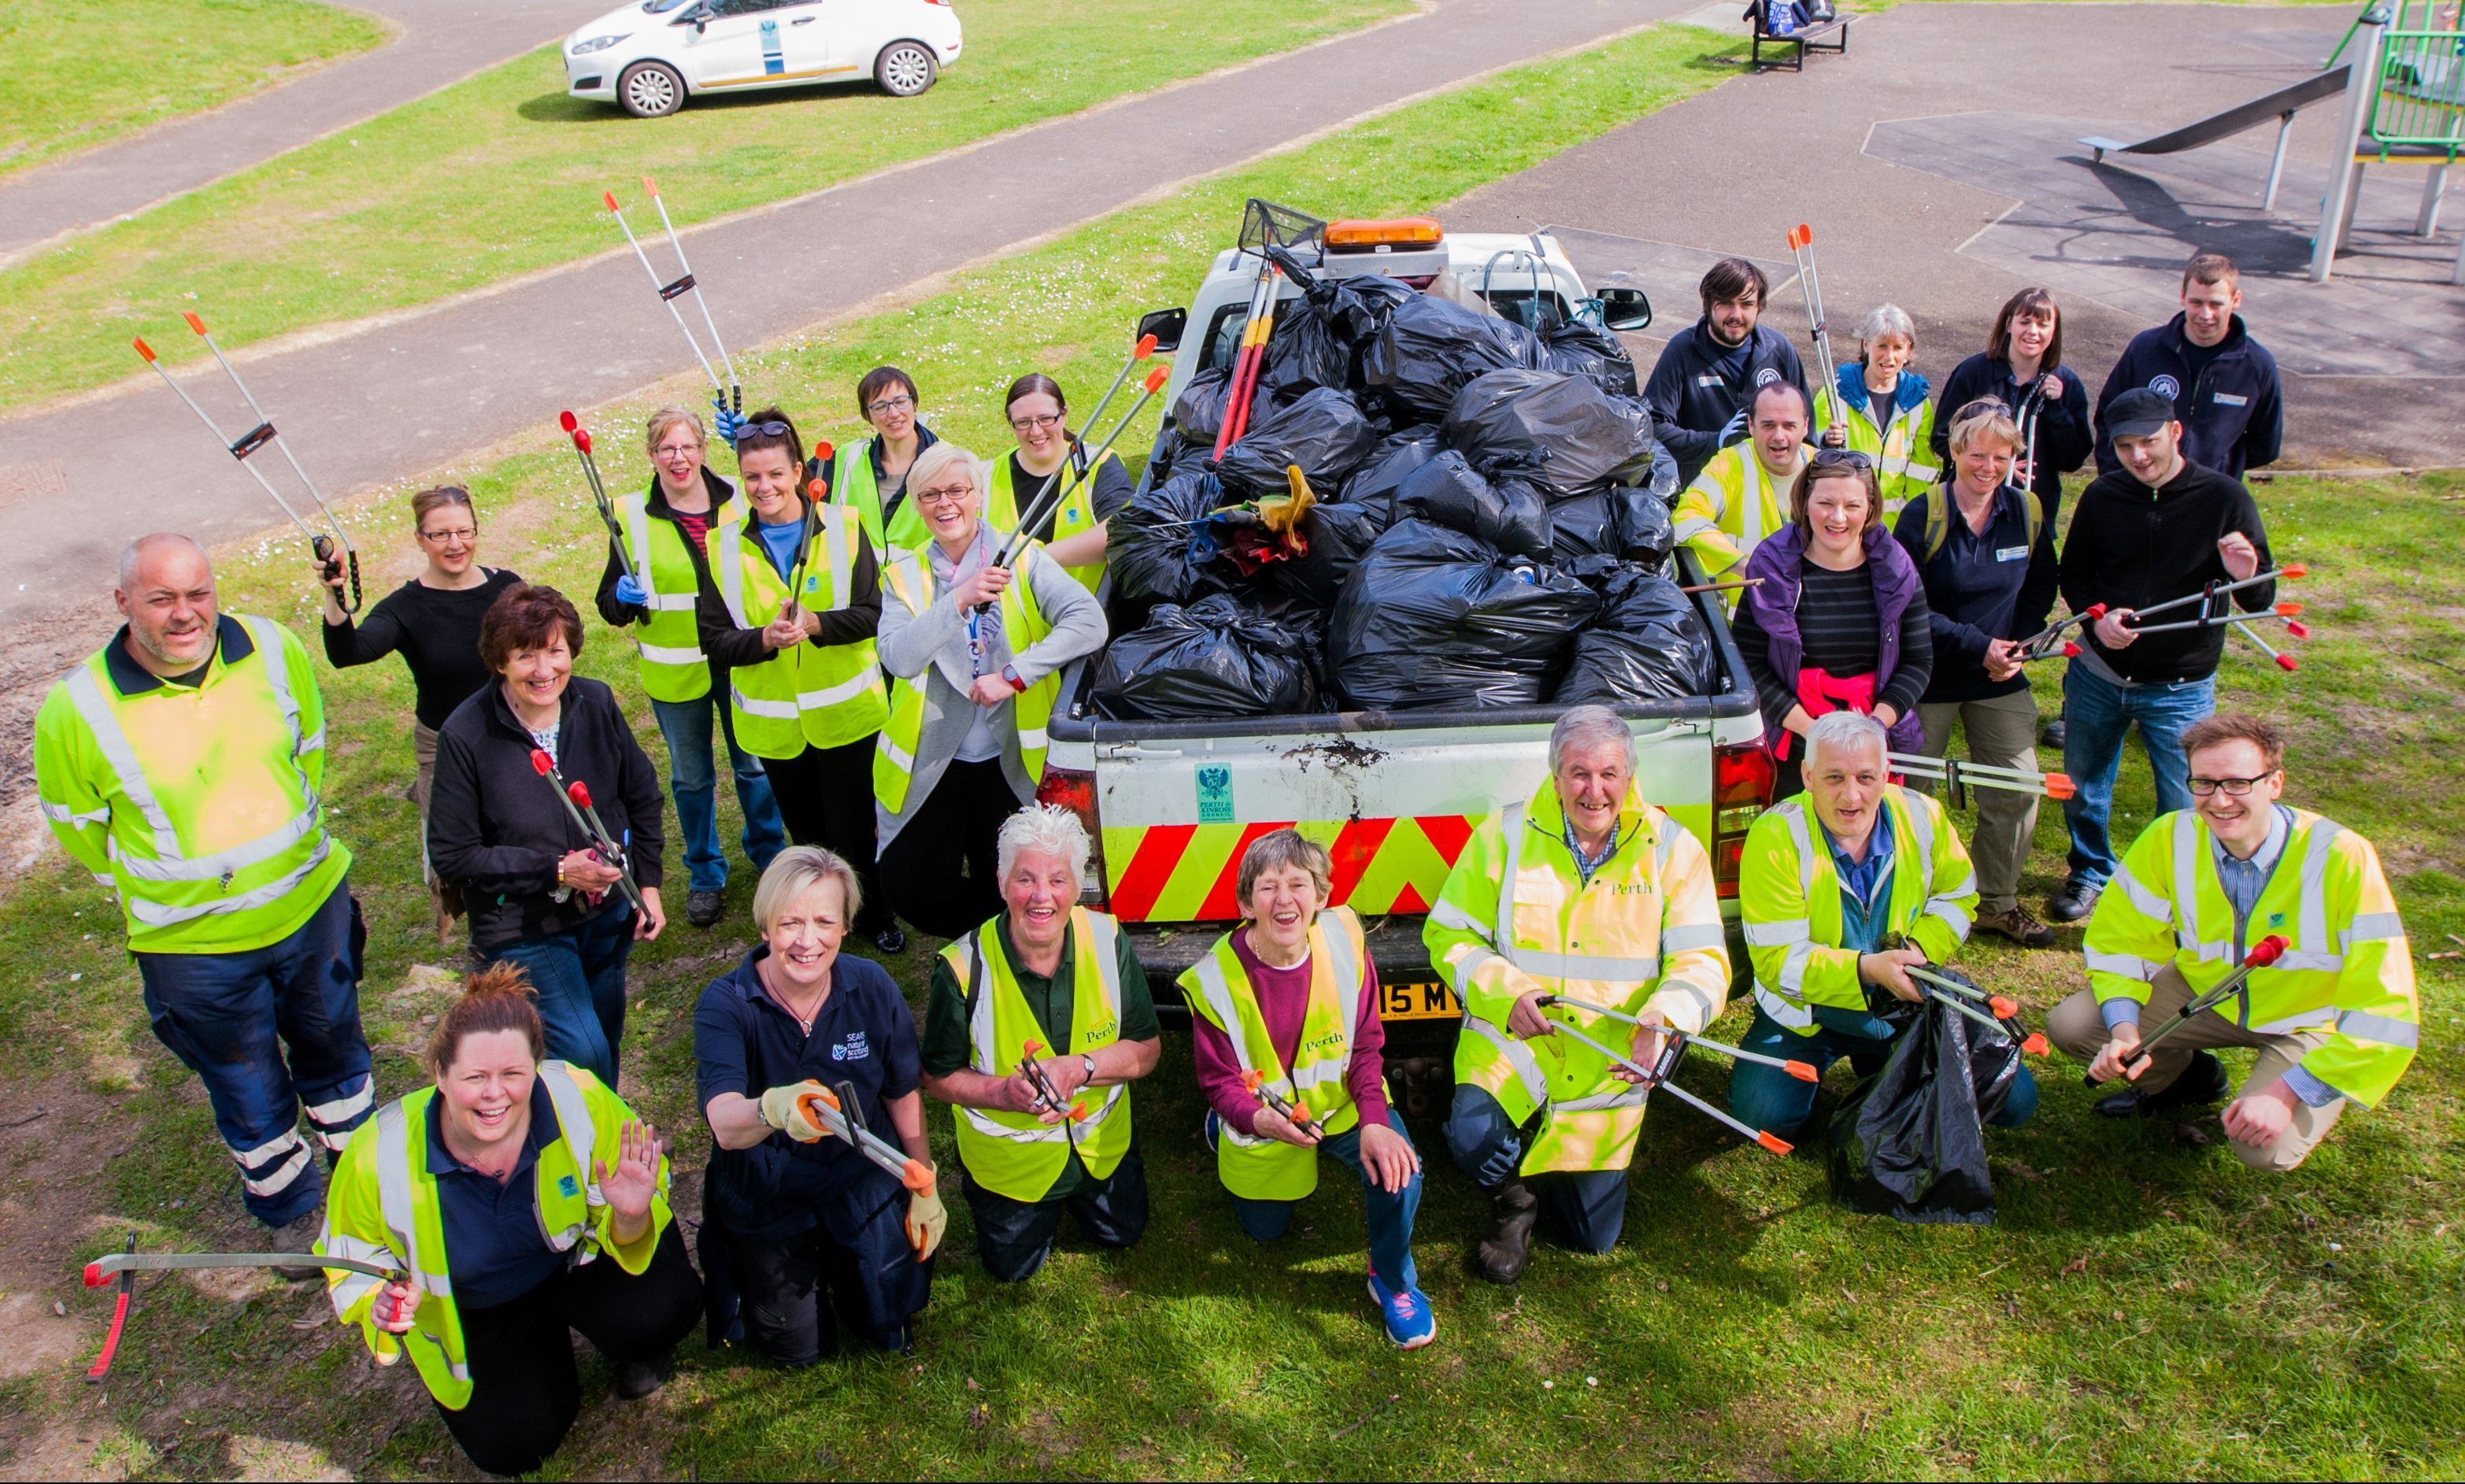 Perth and  Kinross Council, Community Greenspace and Beautiful Perth working together. Picture shows most of those that helped to clean up the Lade with the rubbish in black bags.